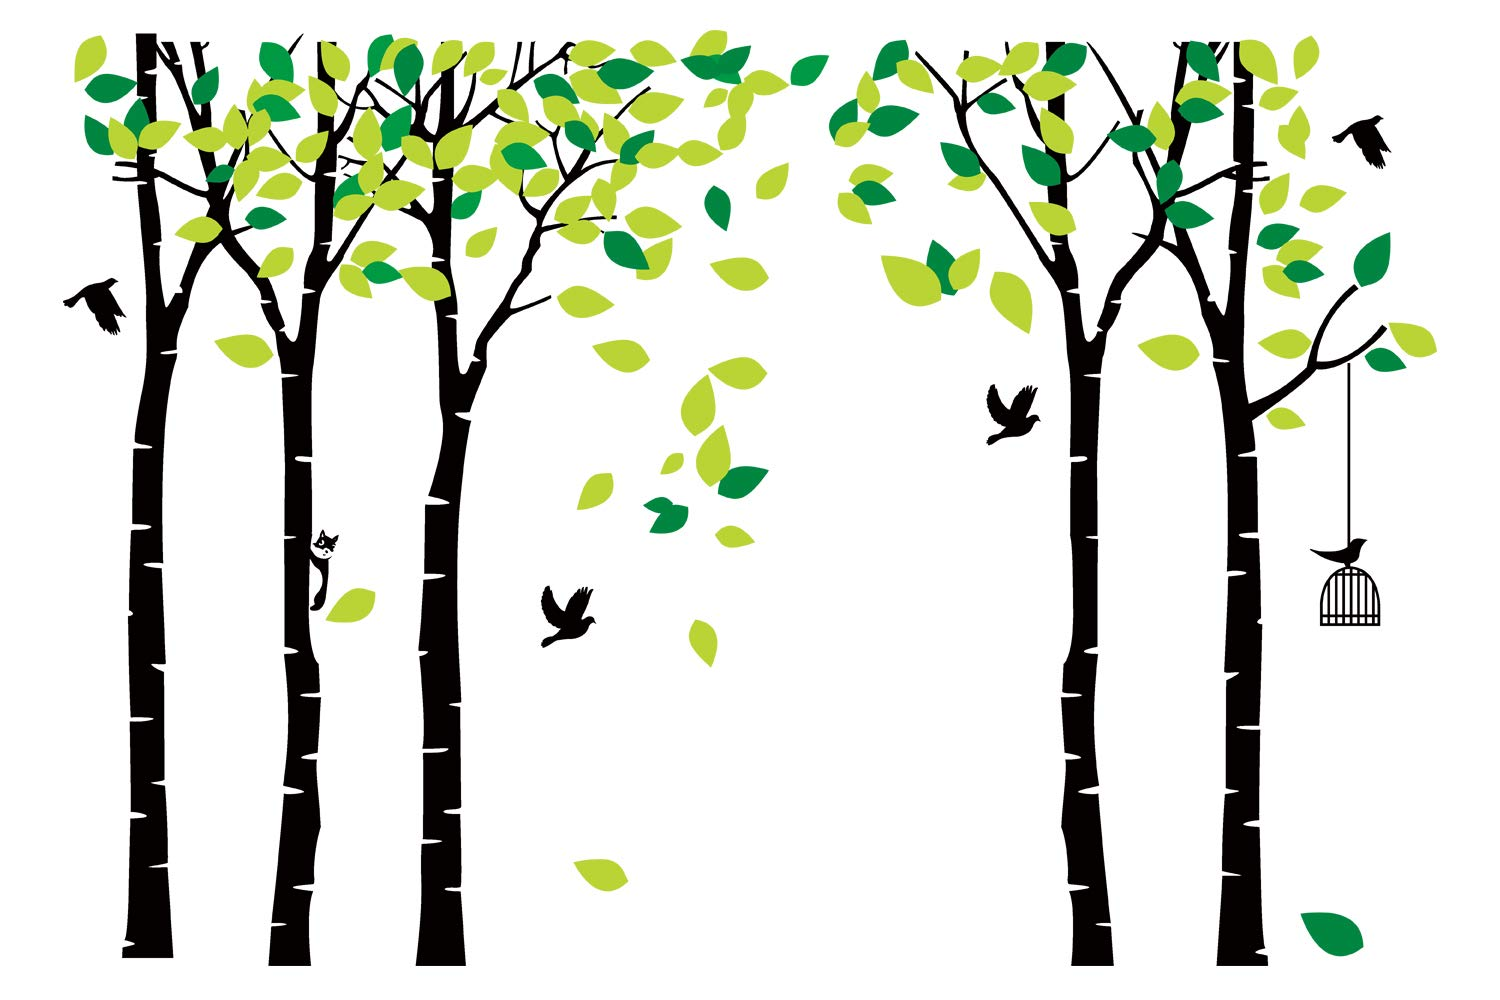 ANBER Giant Jungle Tree Wall Decal Removable Vinyl Sticker Mural Art Bedroom Nursery Baby Kids Rooms Wall Décor (Black and Green) by ANBER